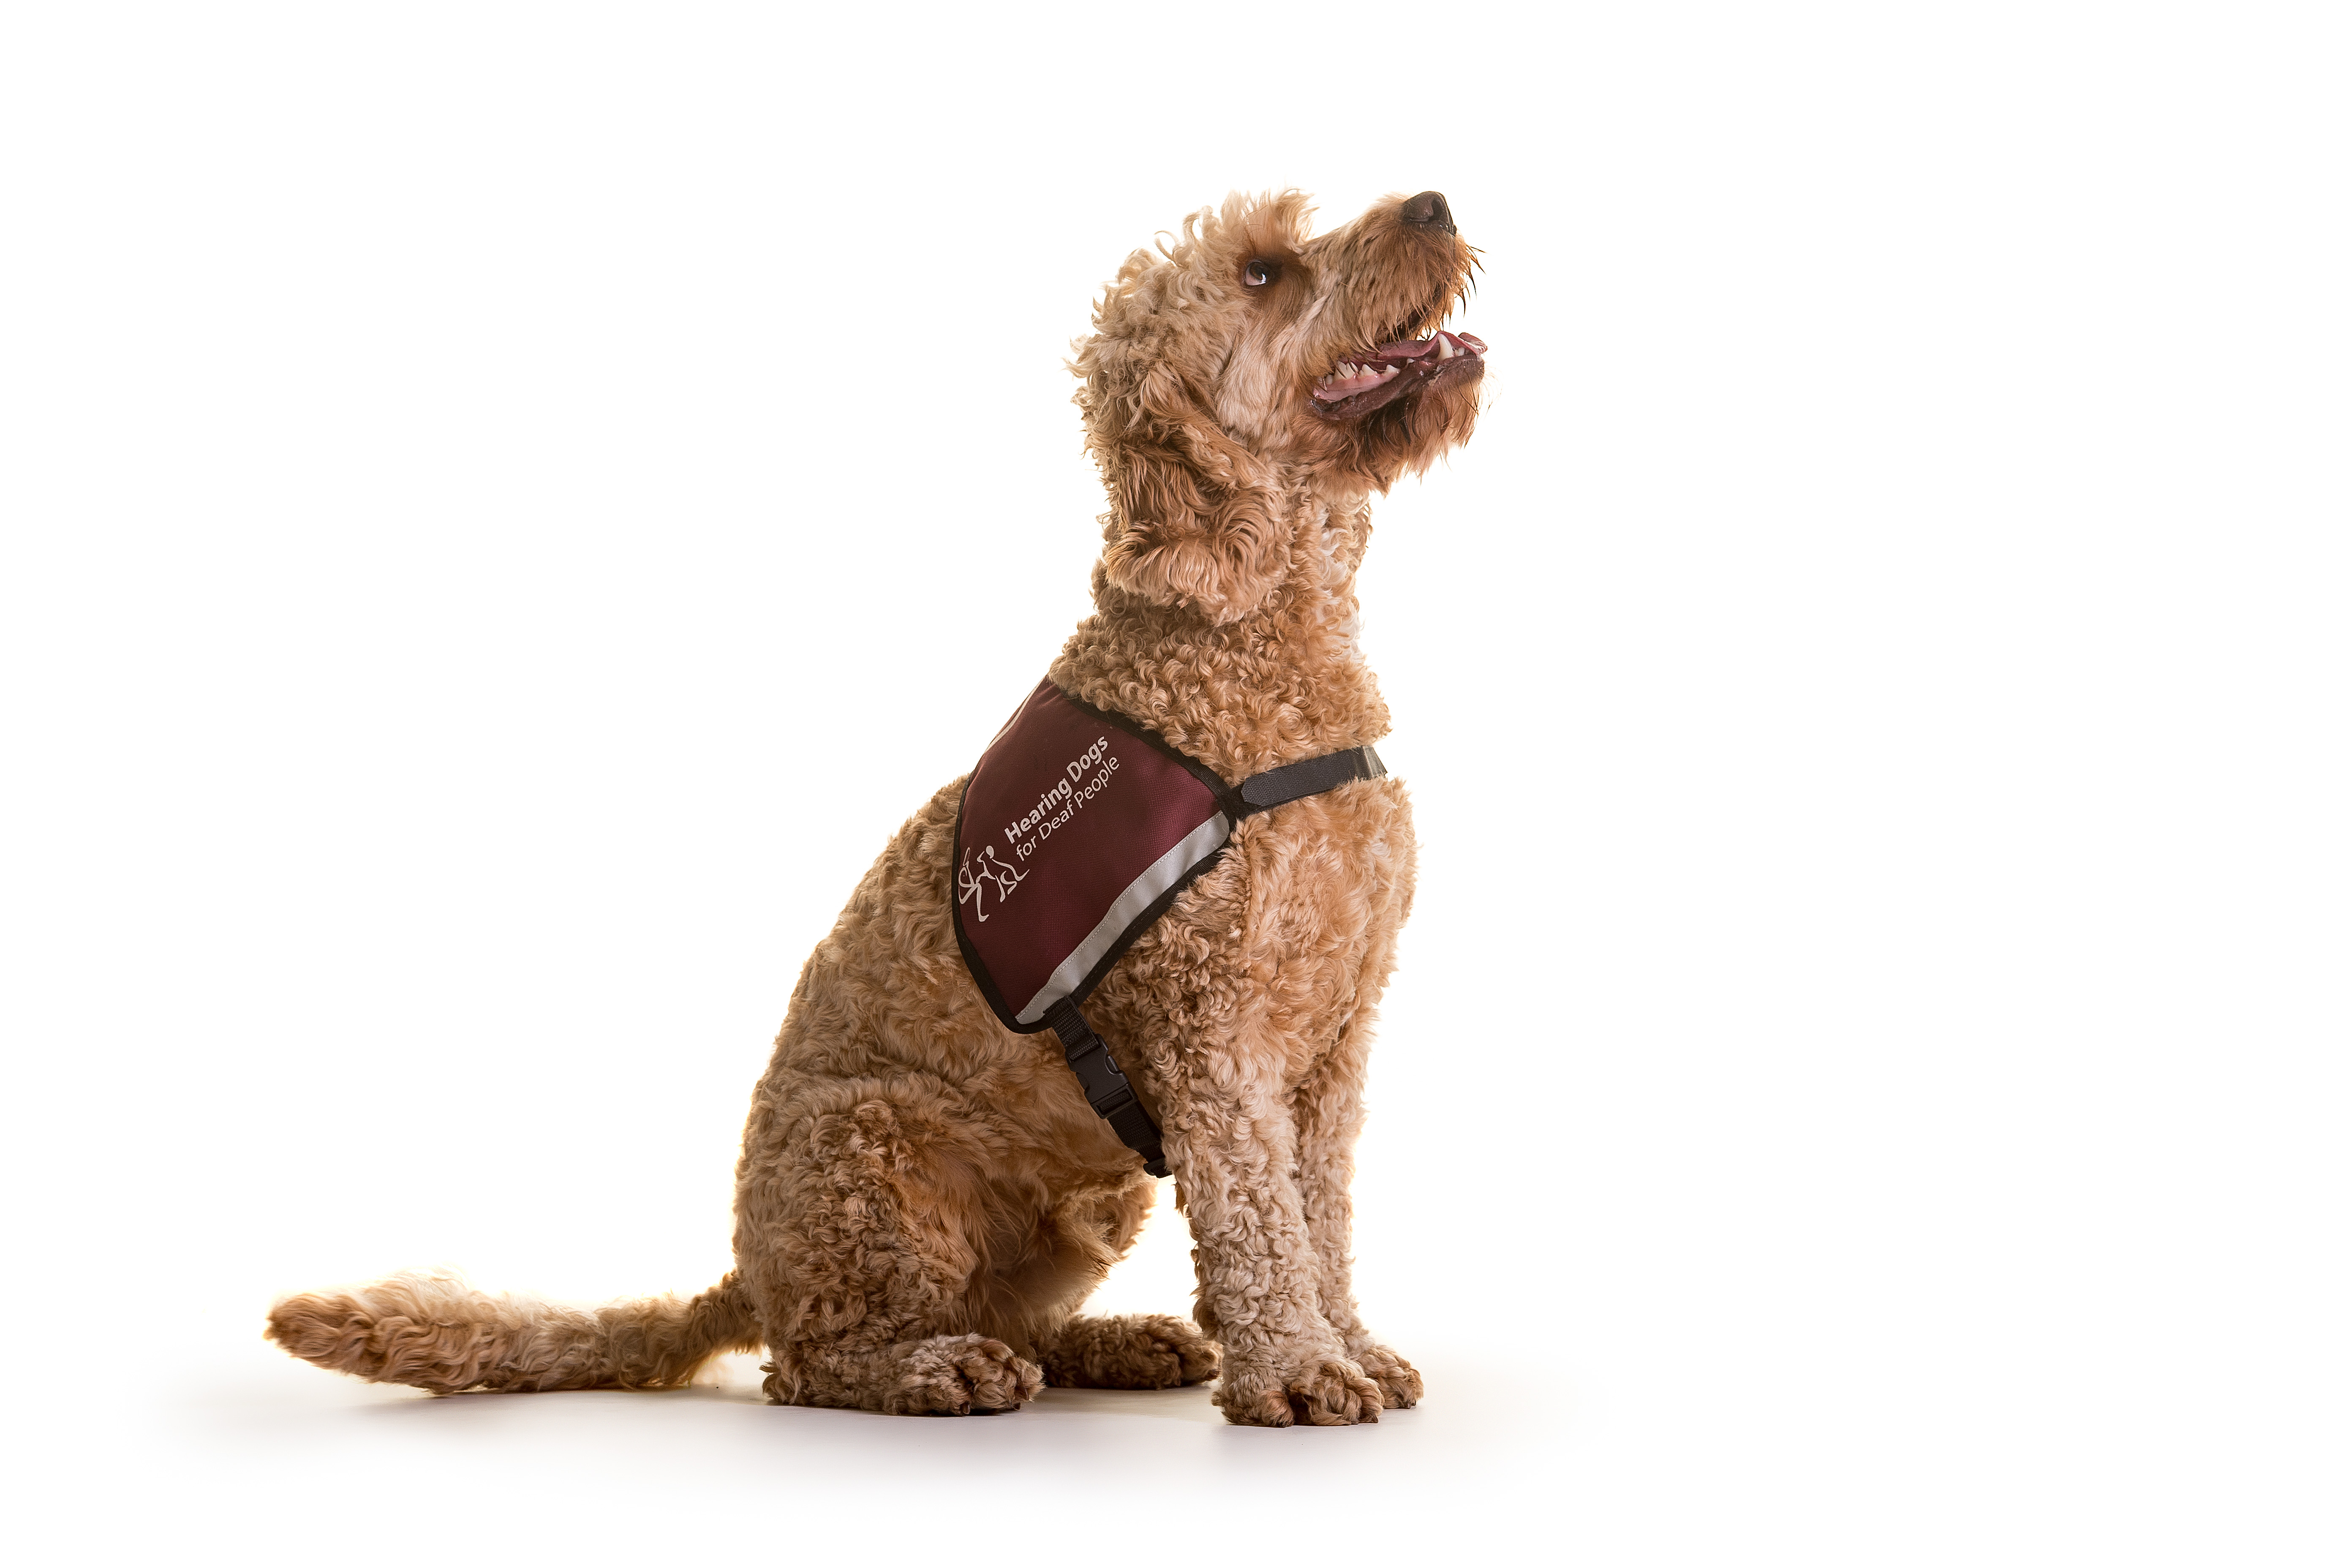 A hearing dog sitting and waiting for instruction